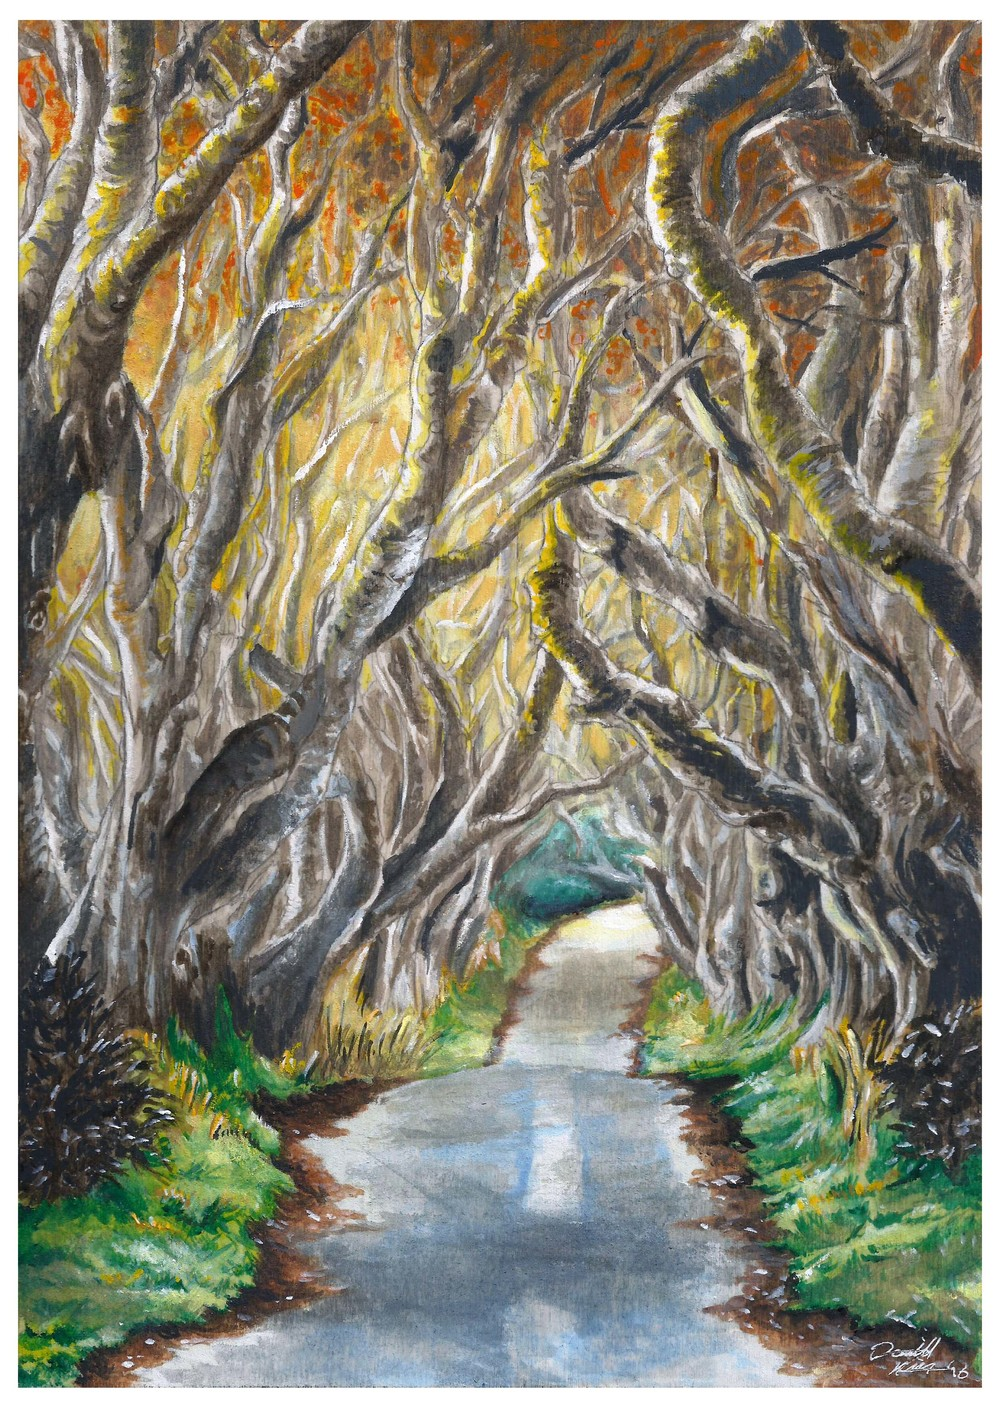 'The Interwoven Path' the very first watercolour painting on wooden panel; not without it's challenges, but definitely the start of a new series on this exciting media.